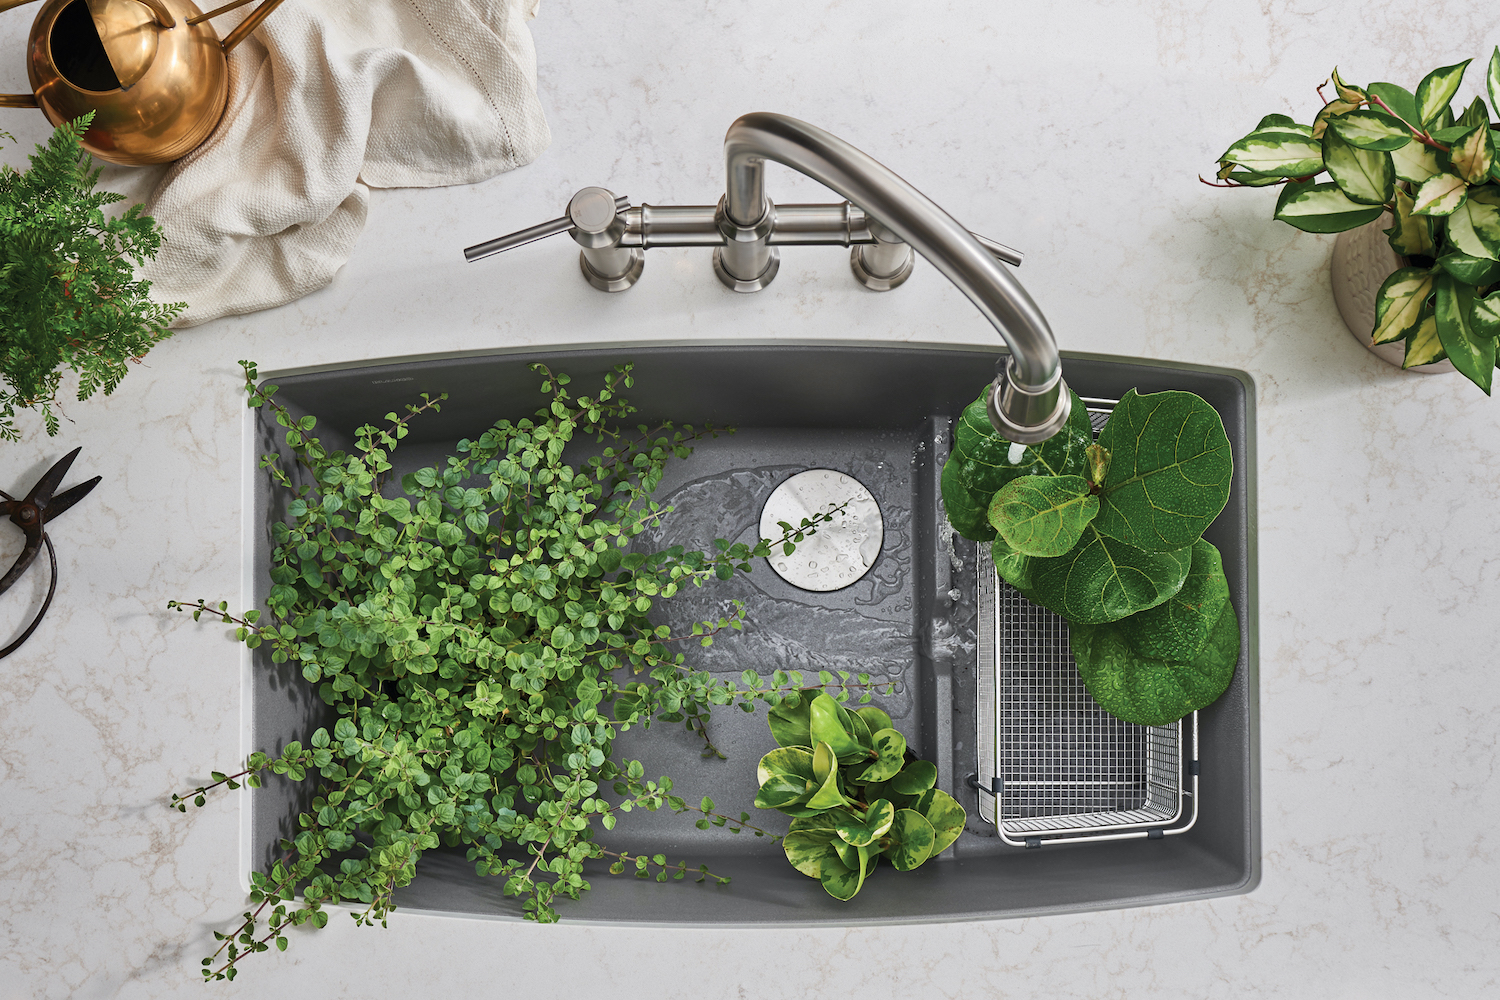 ariel view of sink with green plants in sink